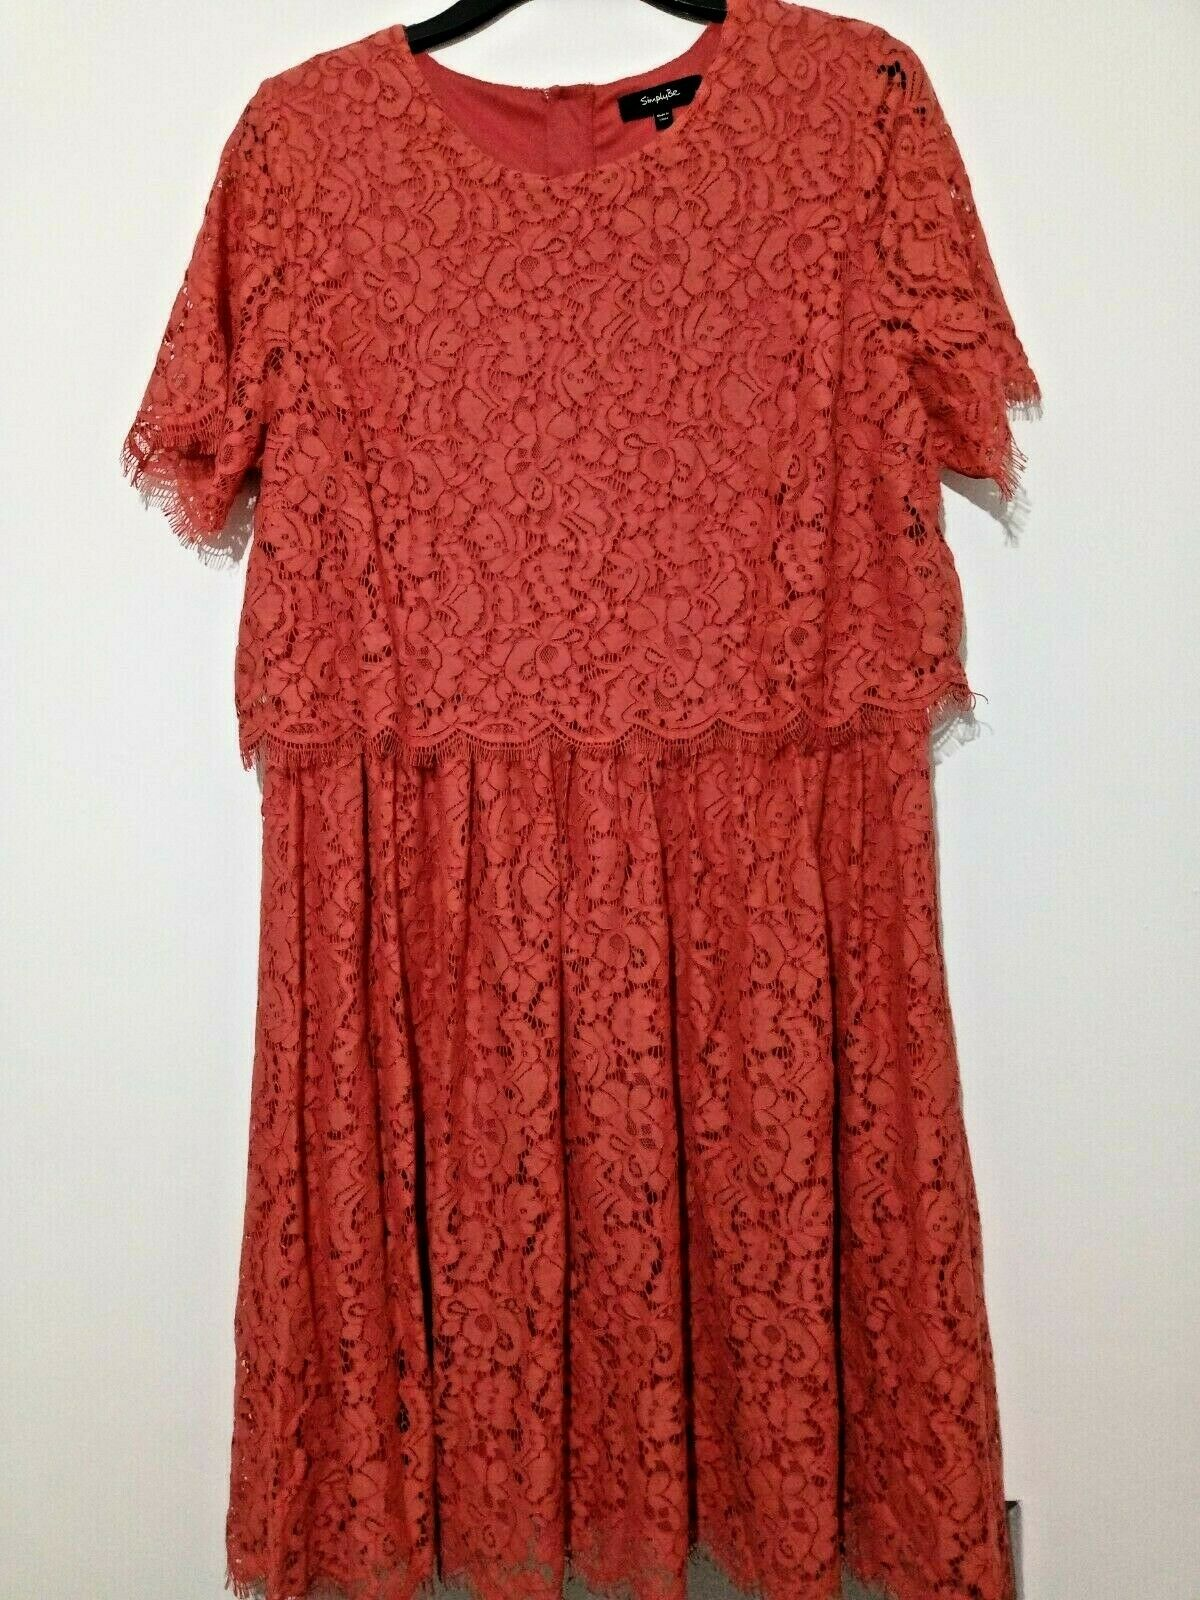 NEW Simply Be Coral Lace layered dress Size 20 Ref L28U wedding guest